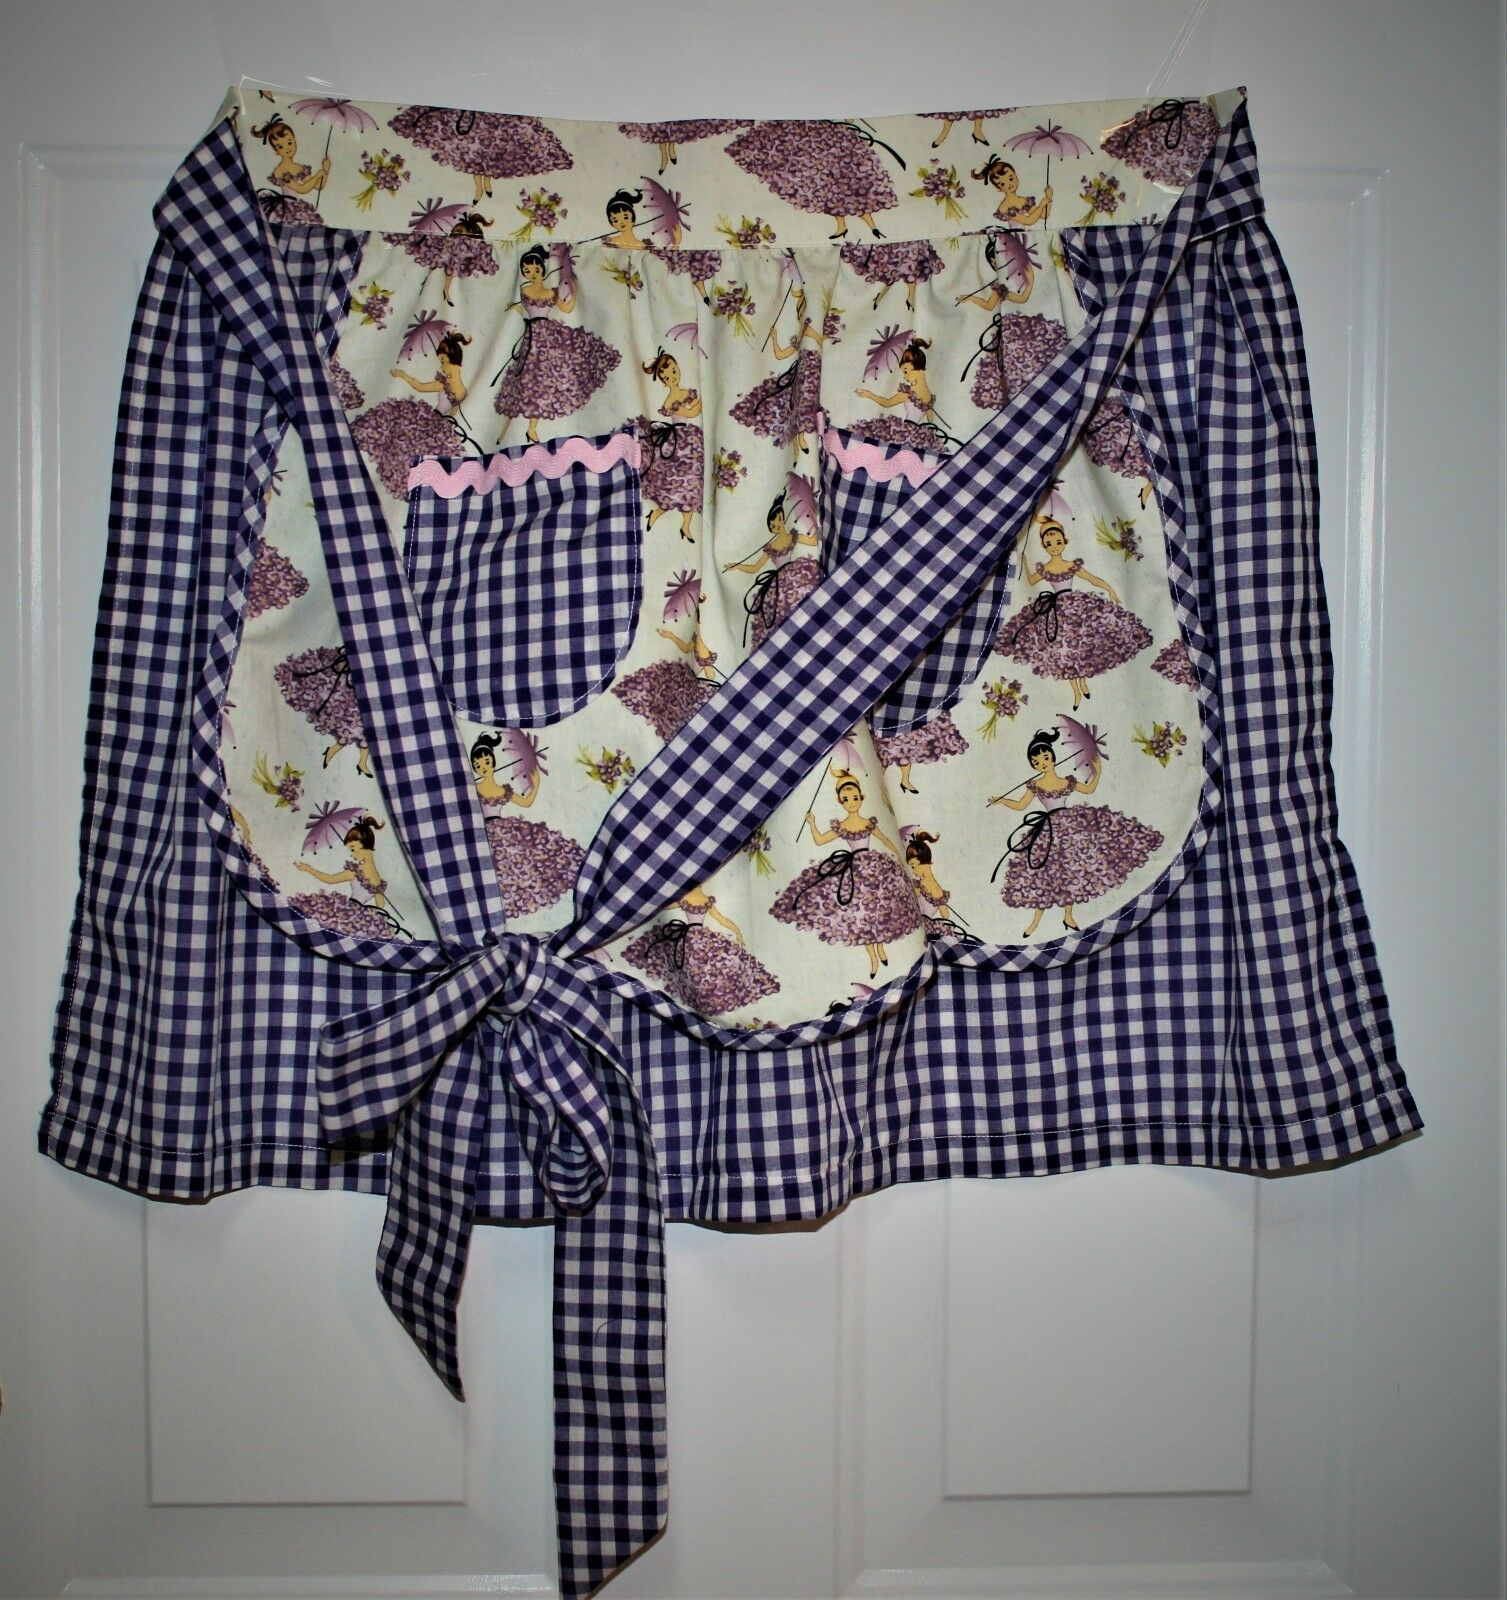 Ladies April Showers Girl with Parasol Handmade Apron